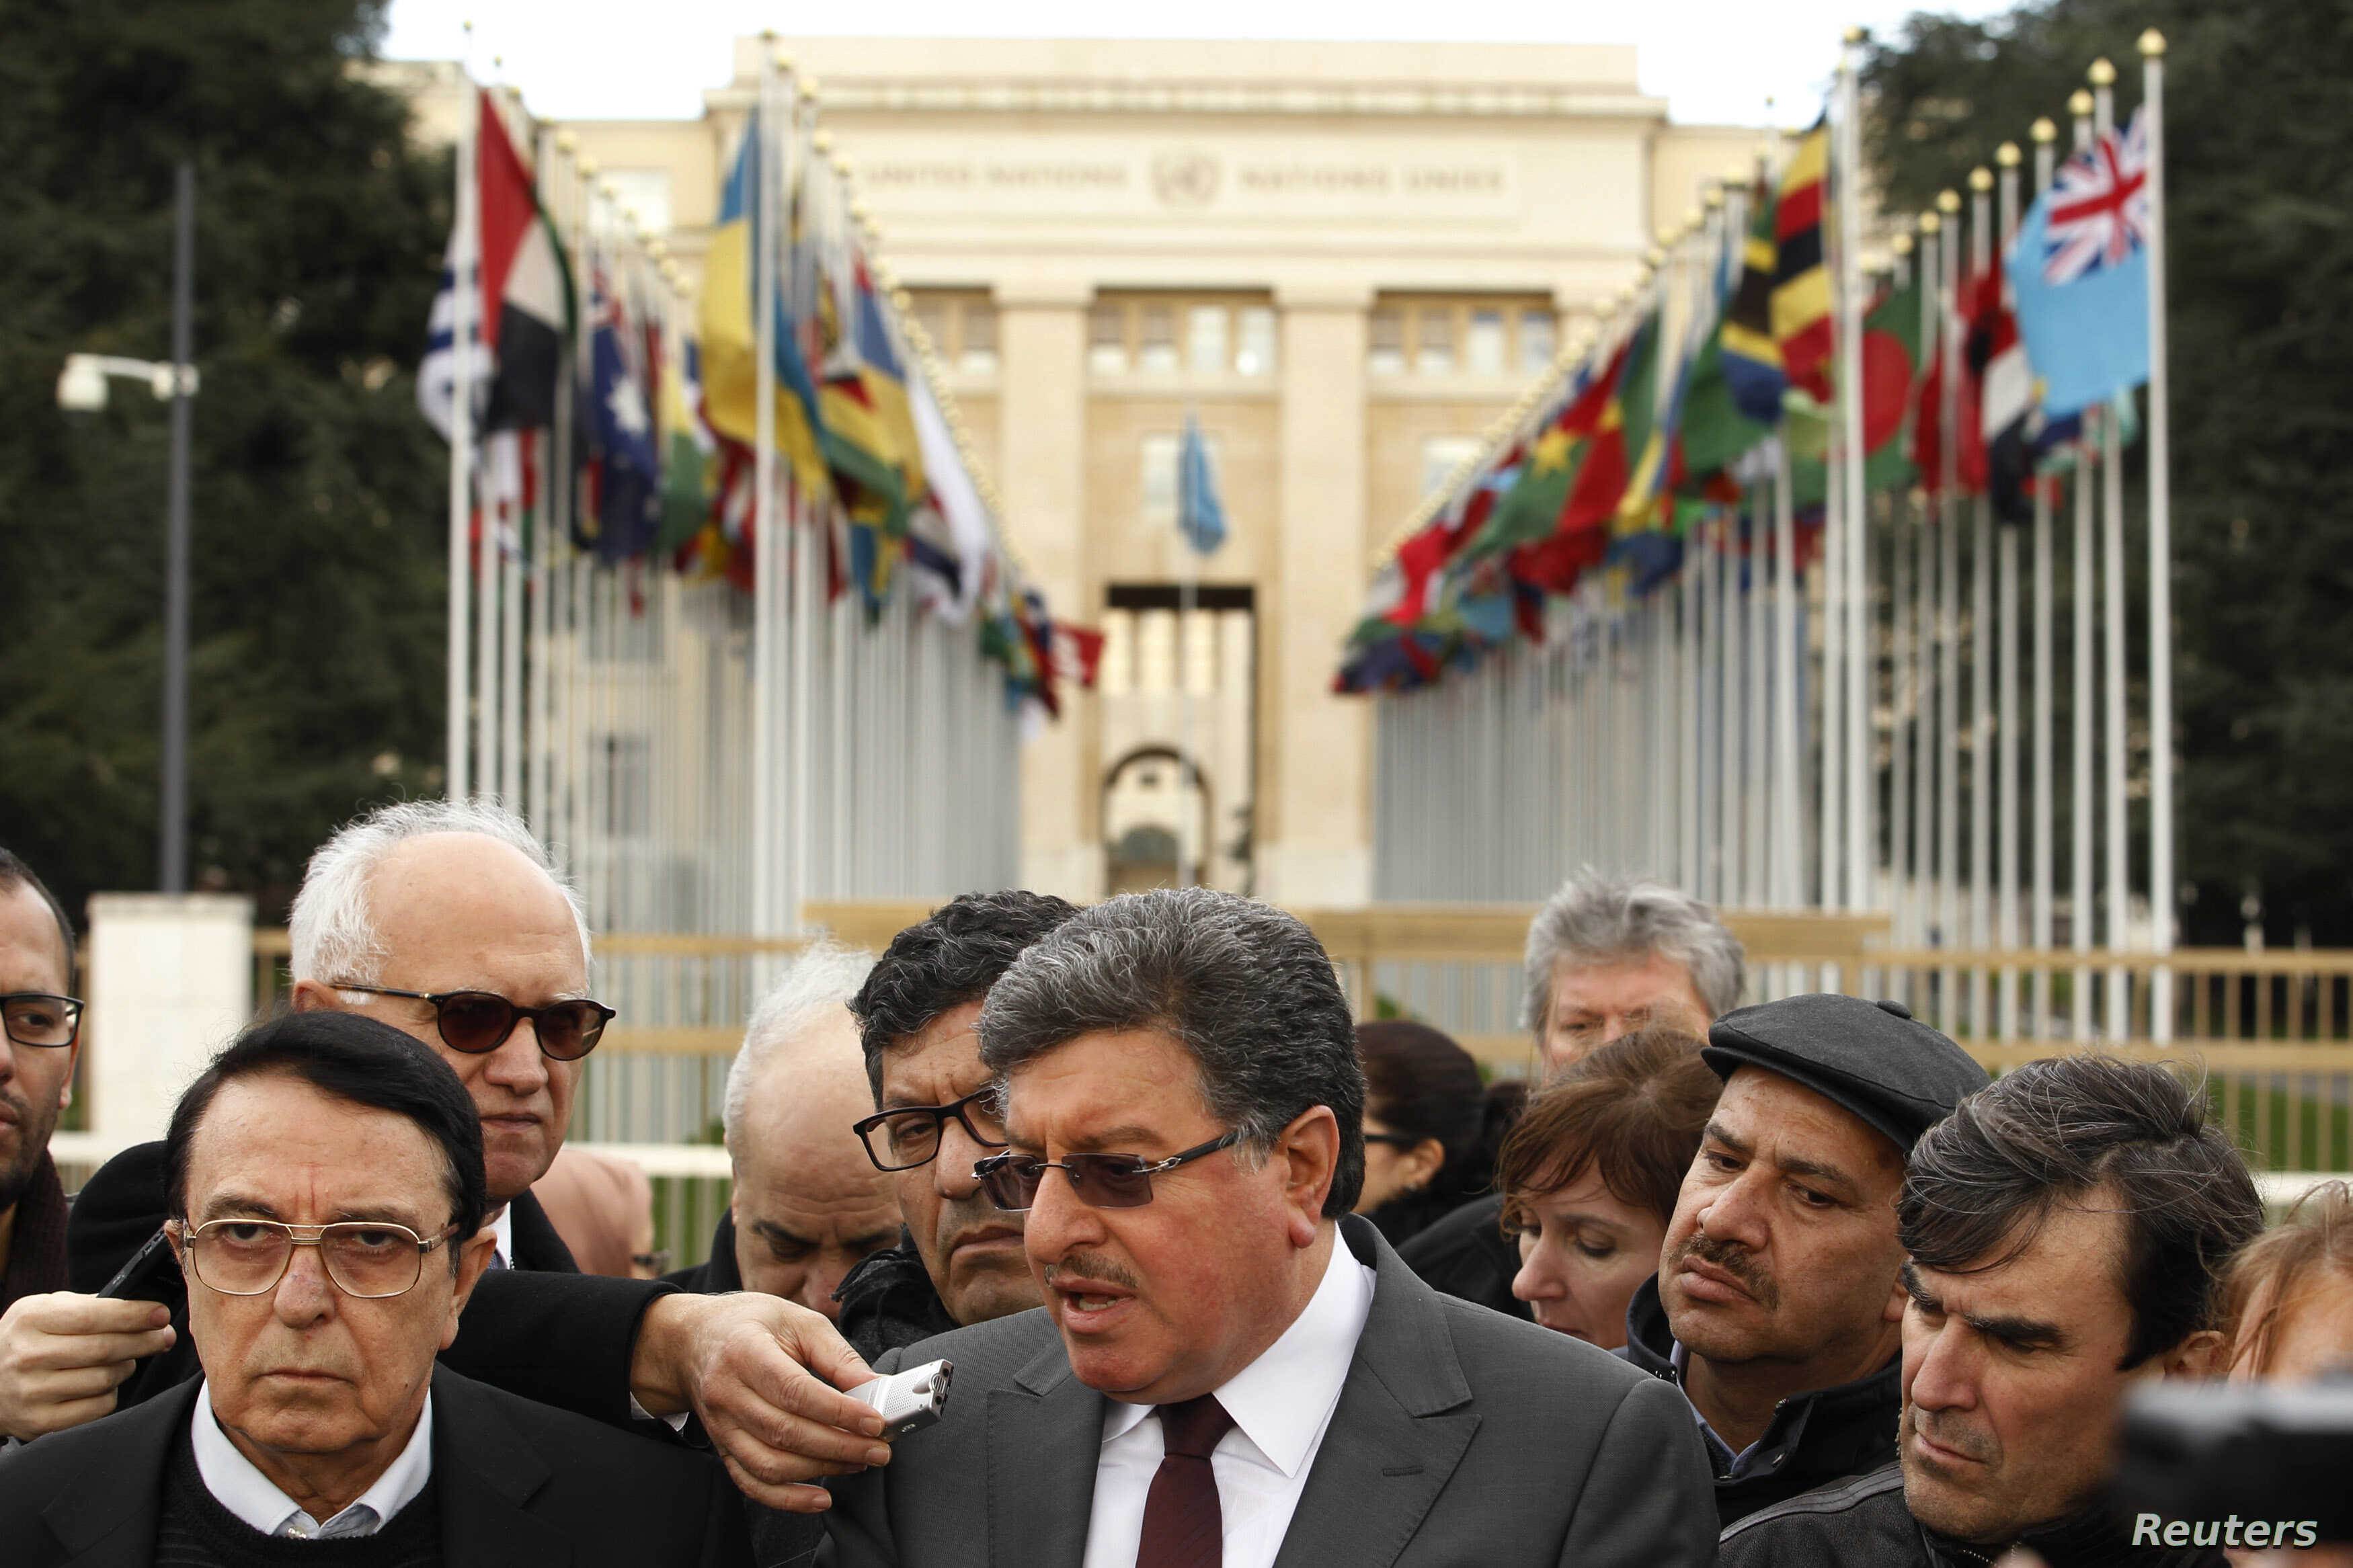 Salim al-Muslat (C) spokesman for the High Negotiations Committee (HNC) and Riad Naasam Agha, member of HNC deliver a statement during the Geneva Peace talks outside the United Nations in Geneva, Switzerland, Feb. 2, 2016.